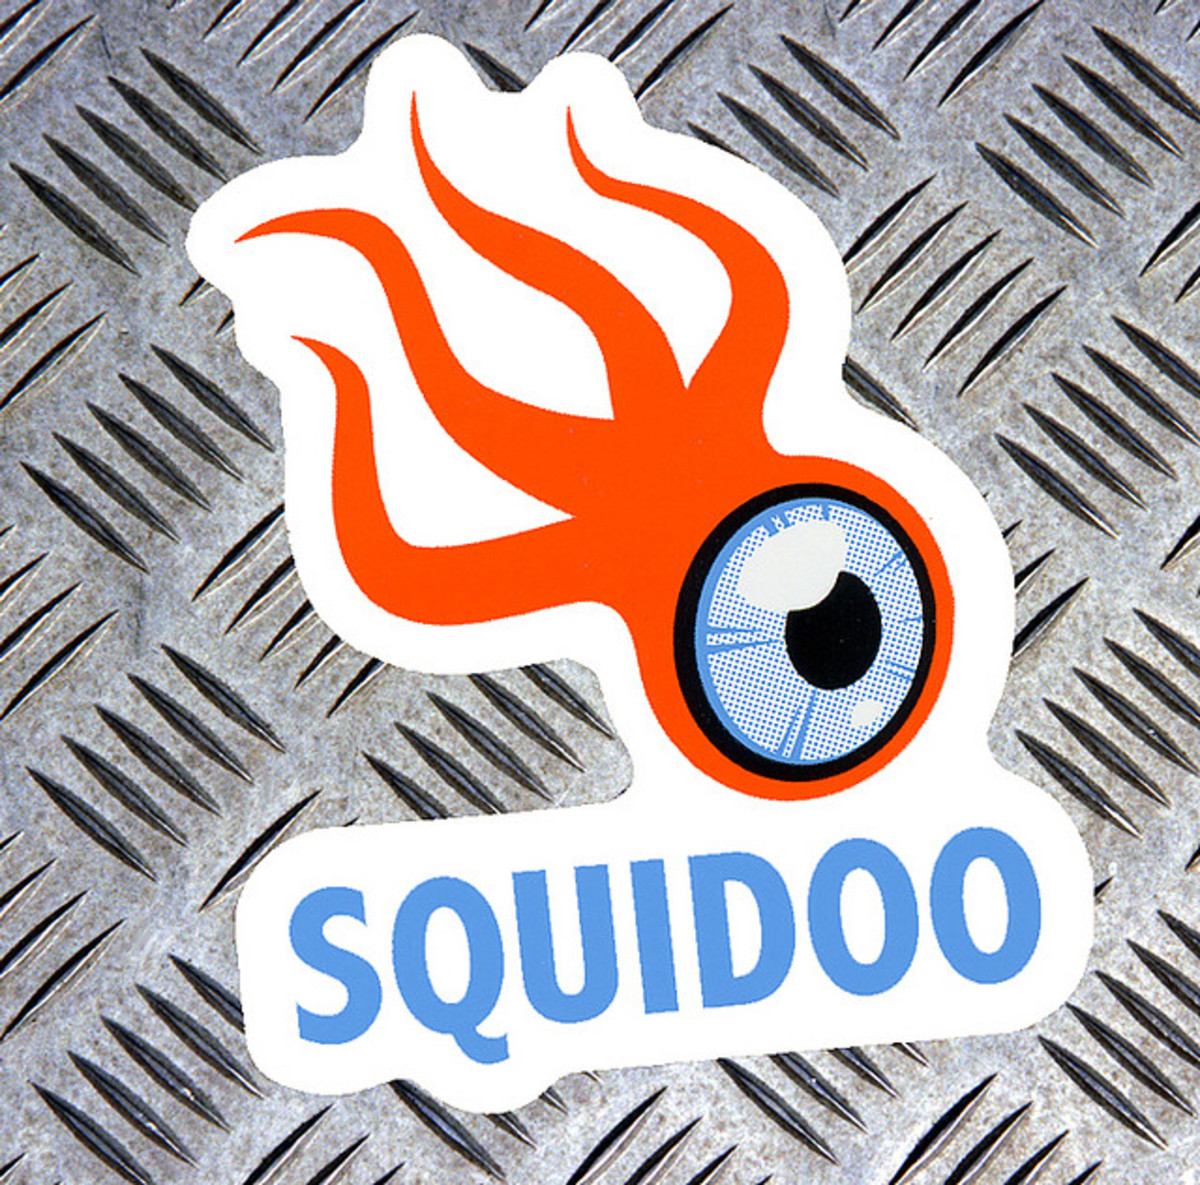 Squidoo Review: Is It Worth My Time?